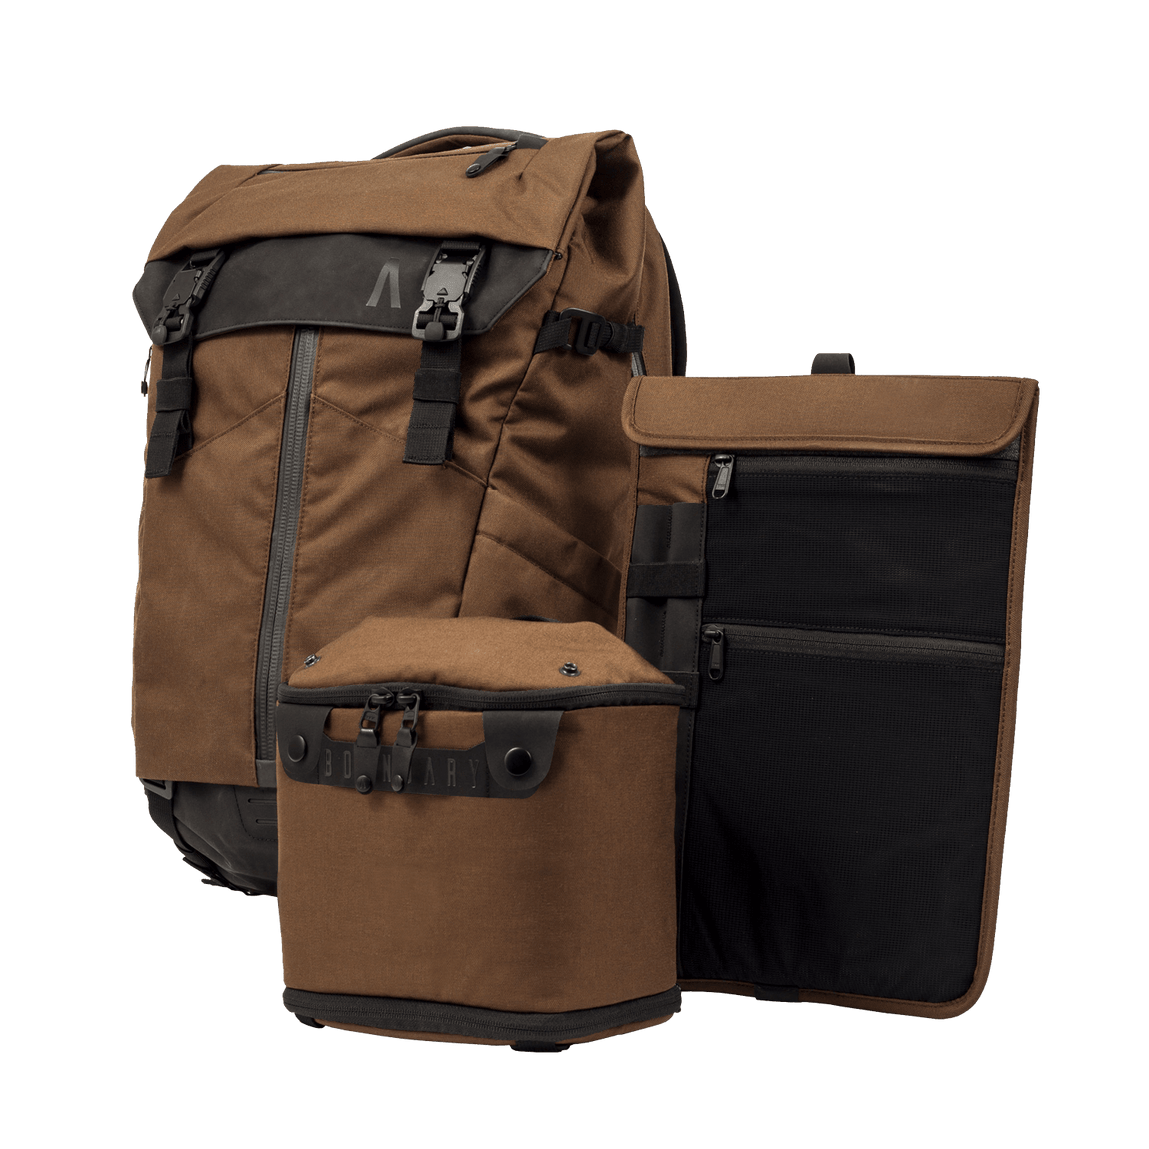 2018 BEST CAMERA   TRAVEL BACKPACK — SEE THE REVIEWS  PRIMA SYSTEM  –  Boundary Supply 9d973dc229e16